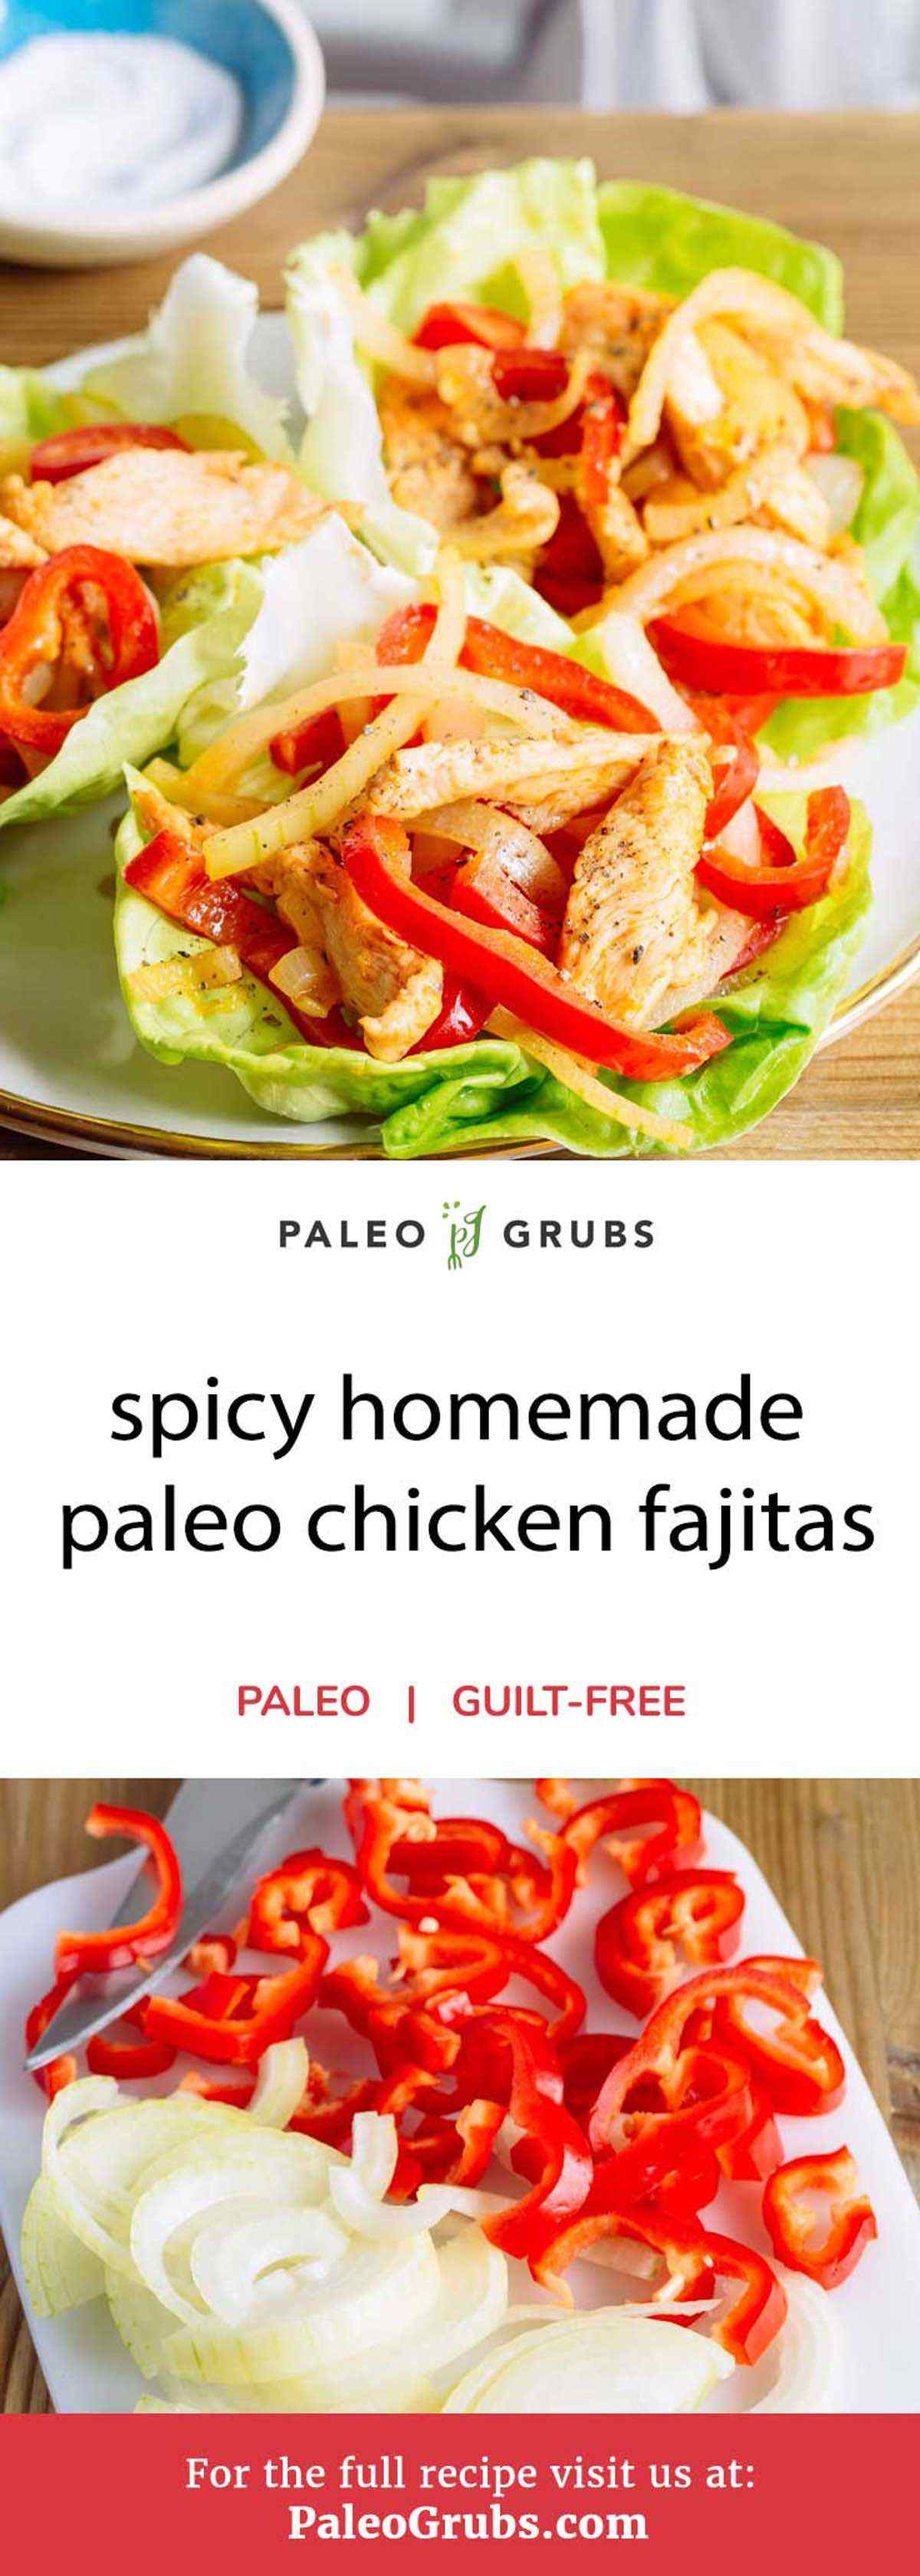 Looking for a healthy Tex-Mex meal option that's perfectly spicy and loaded with flavor? This chicken fajita with paleo tortillas recipe has got you covered then. It's got homemade tortillas that are completely grain-free and an incredible fajita mixture using herbs and spices along with several bell pepper colors with onion. It's incredibly easy to prepare as well meaning you'll be on your way to enjoying a spicy hot Tex-Mex meal in no time at all.